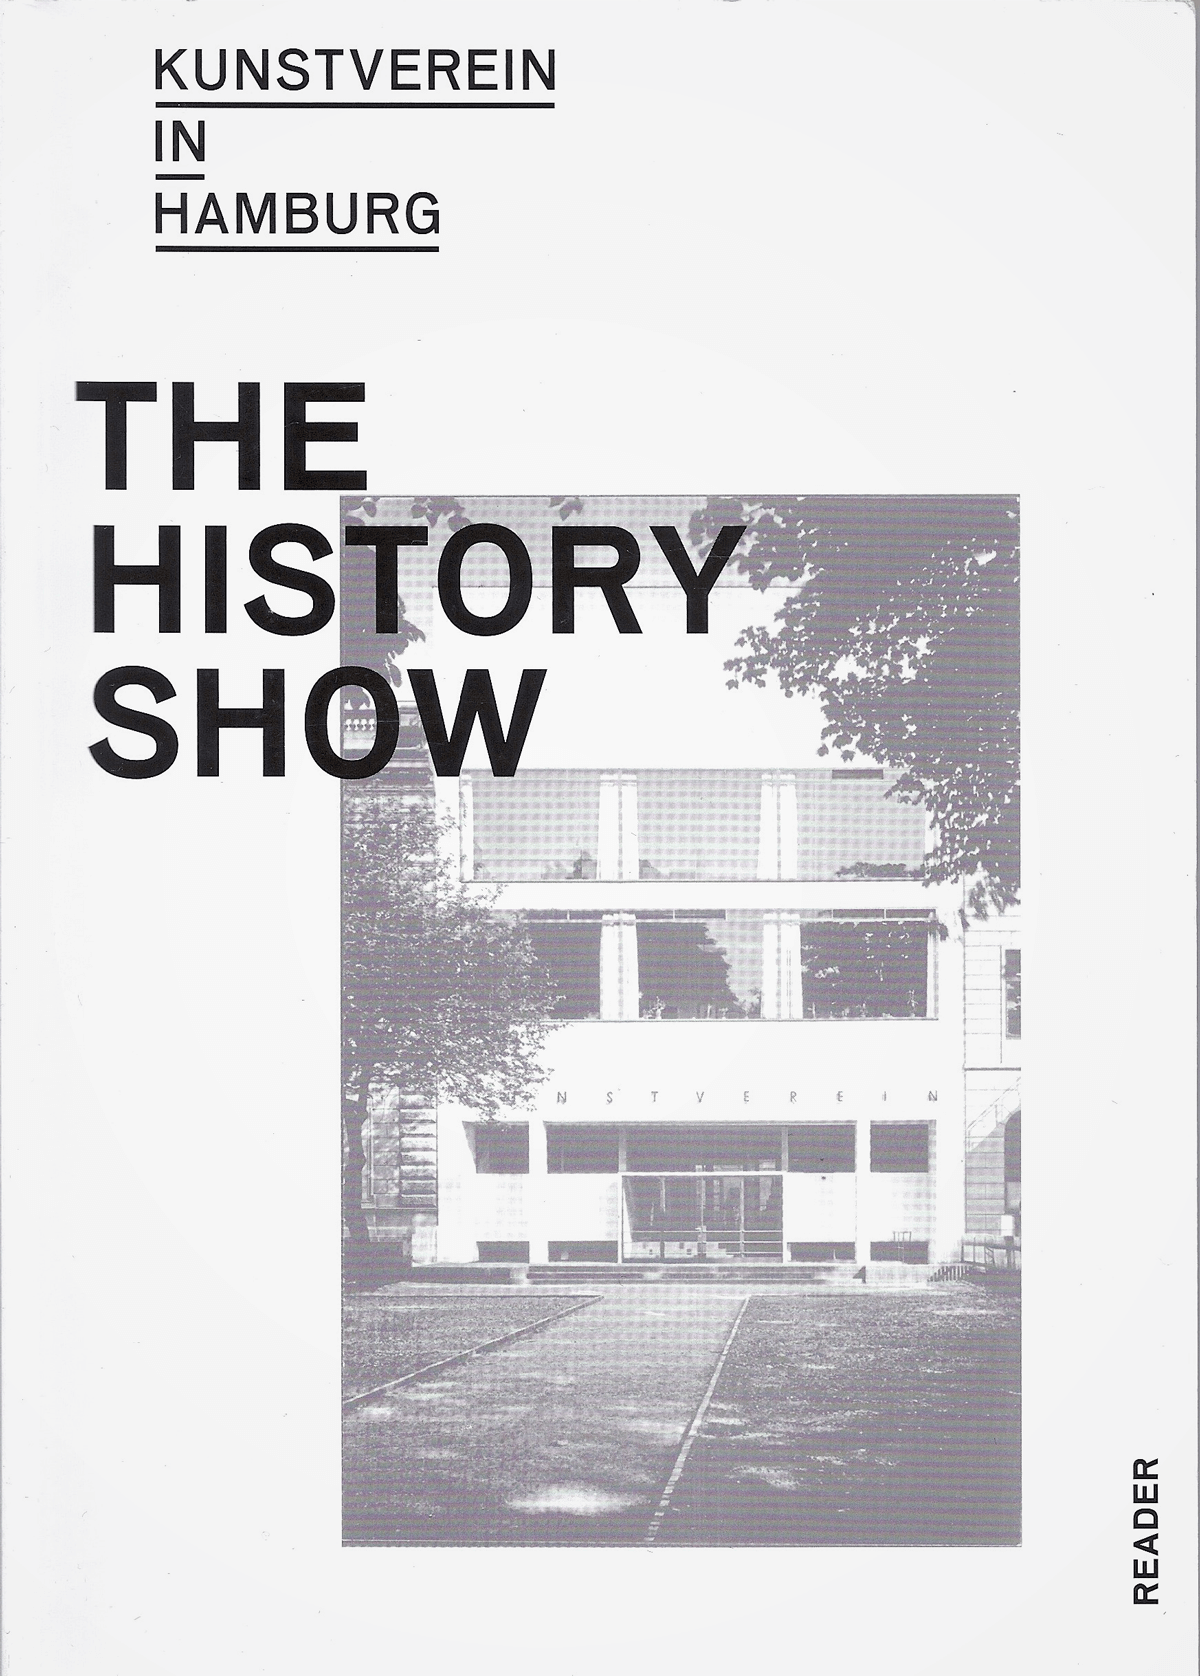 THE HISTORY SHOW.